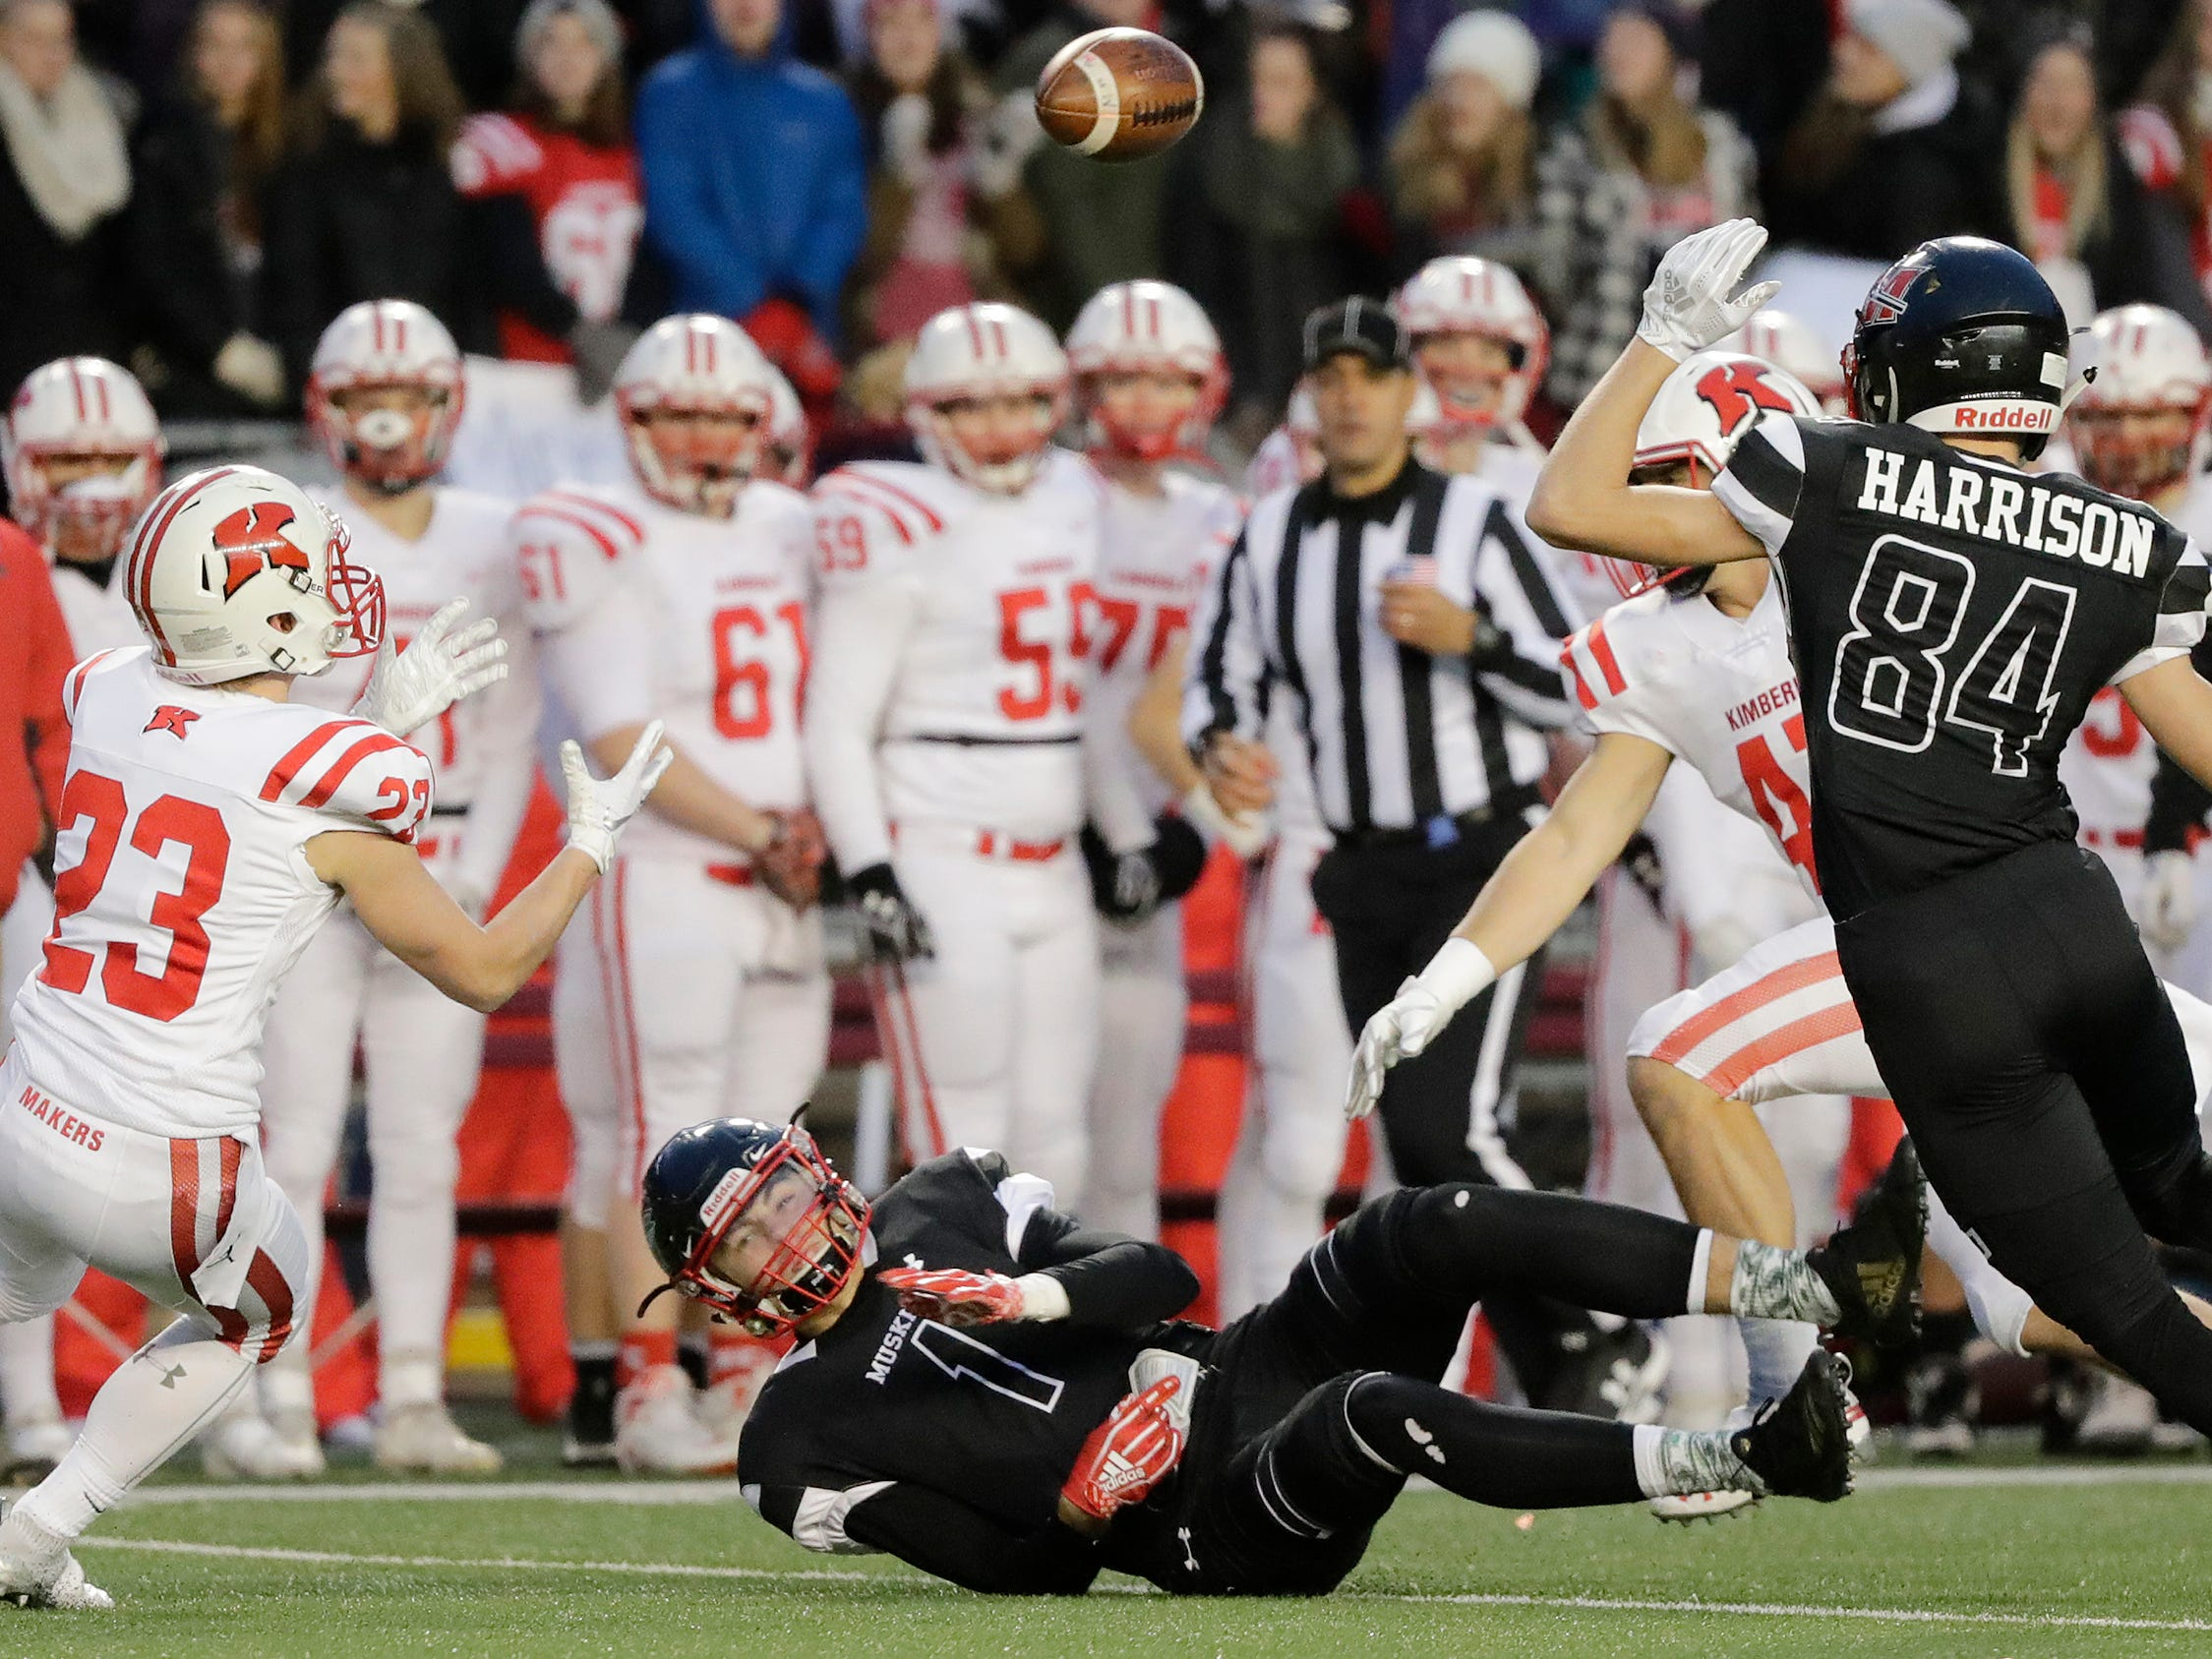 Kimberly's Zach Olson (23) intercepts a pass against Muskego in the WIAA Division 1 championship game at Camp Randall Stadium on Friday, November 16, 2018 in Madison, Wis.